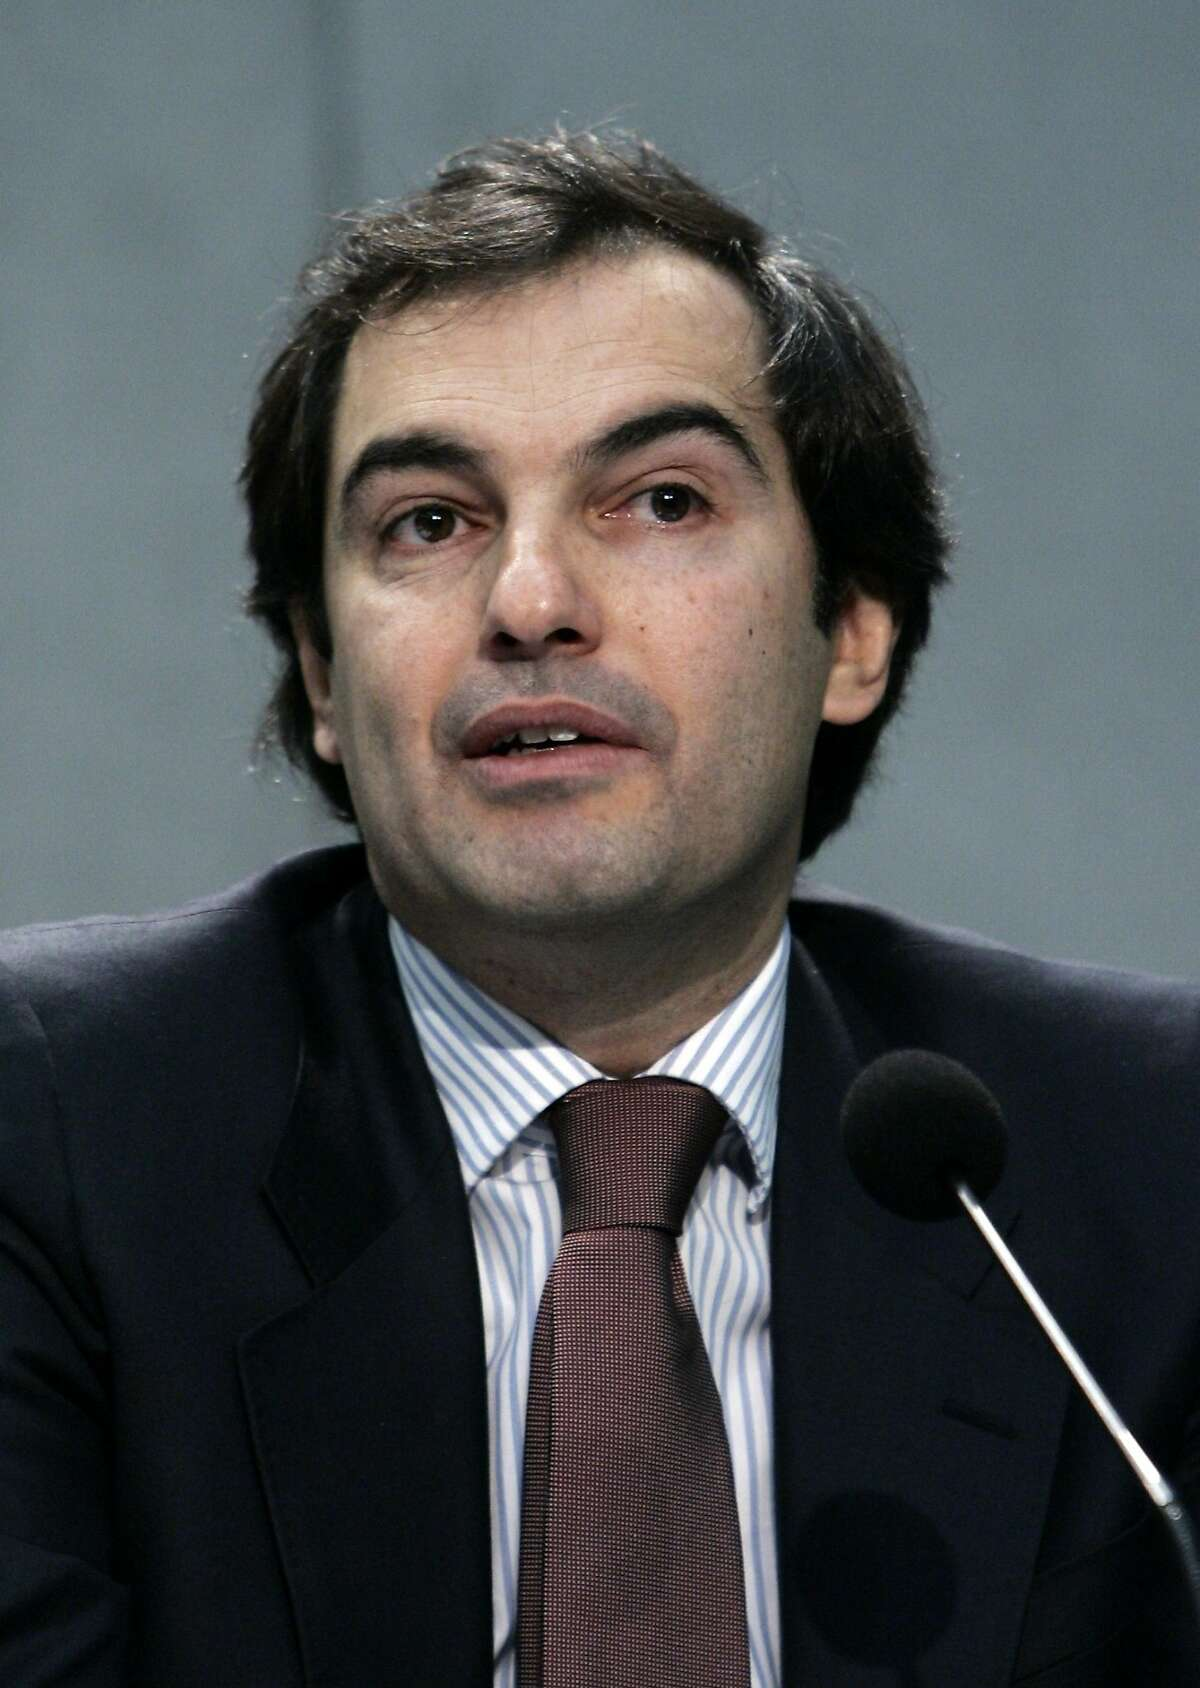 FILE - In this Jan. 23, 2009 file photo, Henrique de Castro, Google's then Managing Director Media Solutions, speaks during a news conference at the Vatican's press room. Yahoo on Wednesday, Jan. 15, 2014 announced that CEO Marissa Mayer is cutting loose de Castro, Yahoo's chief operating officer, a possible sign that the Internet company's efforts to revive its long-slumping advertising sales aren't paying off.(AP Photo/Riccarco De Luca, File)